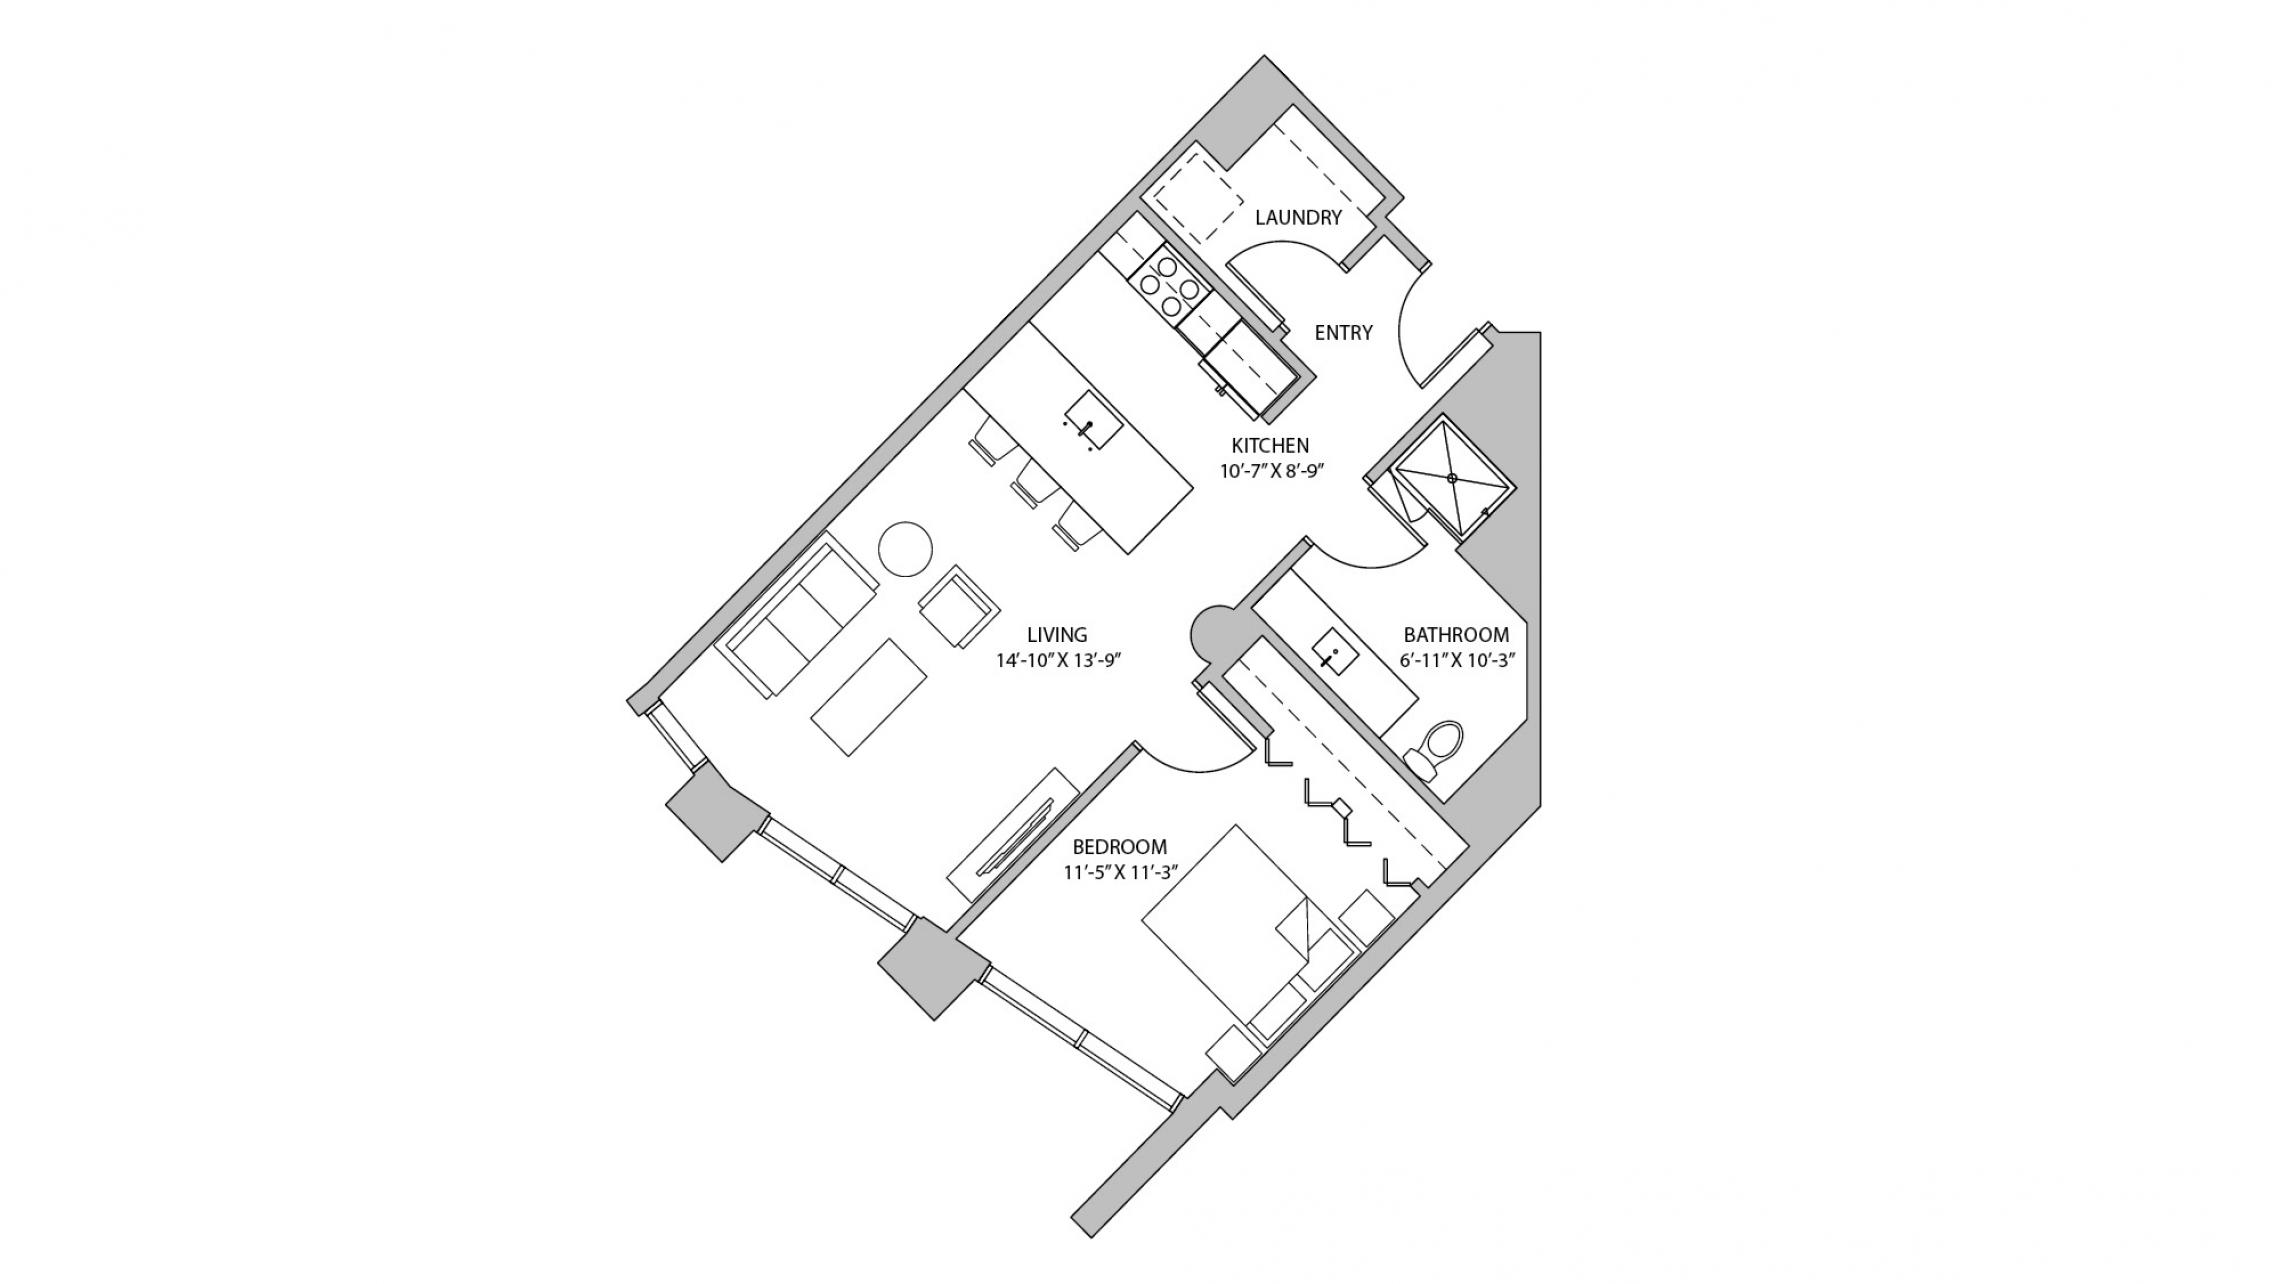 The Pressman - Apartment 217 - One Bedroom, One Bathroom Floorplan